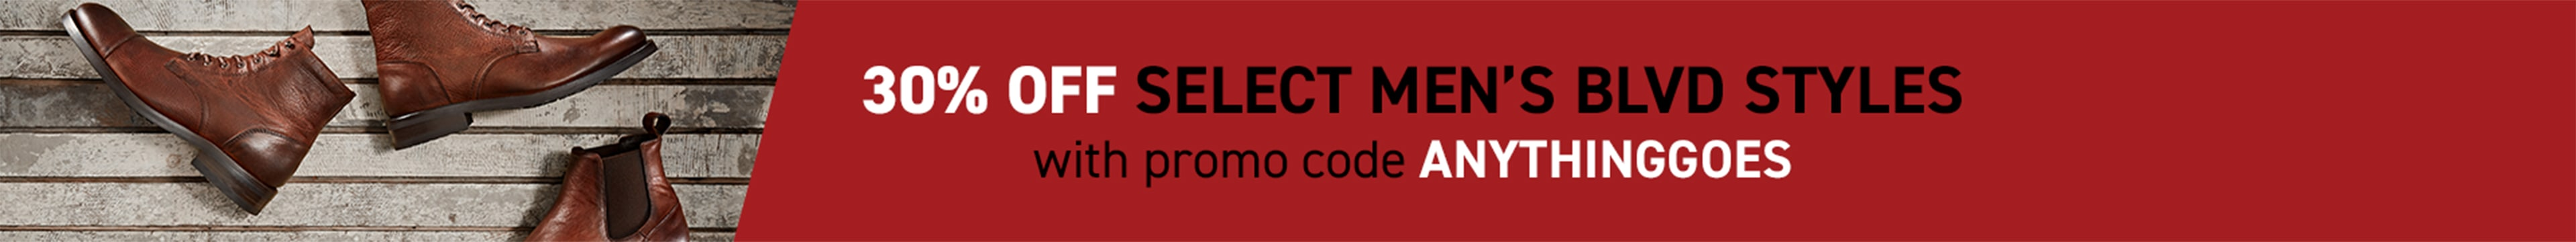 30% off select Men's BLVD styles with code ANYTHINGGOES.